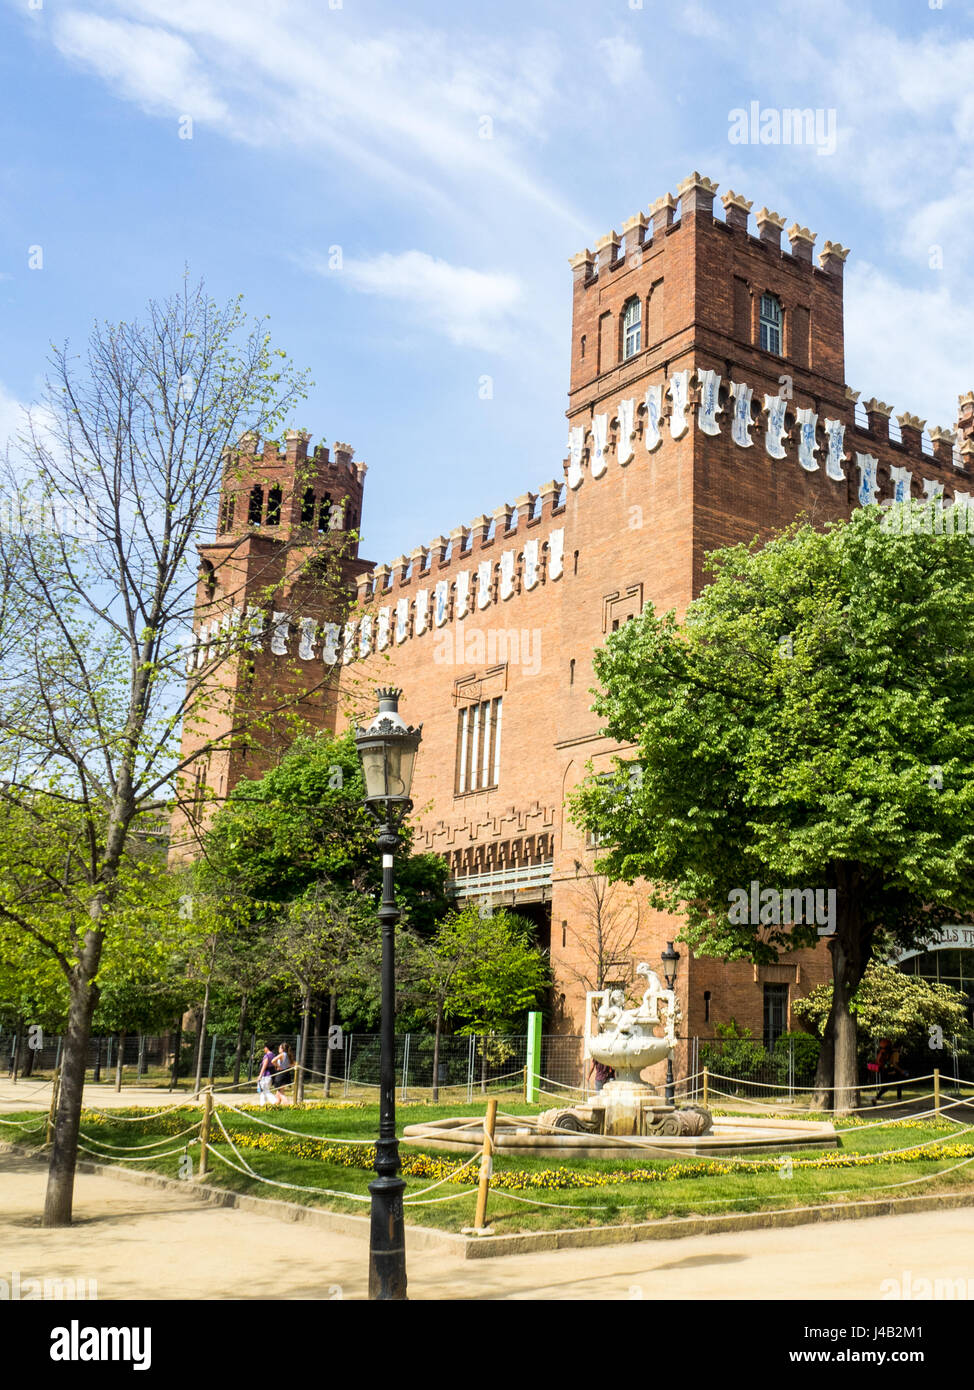 Castell dels Tres Dragons or  Castle of the Three Dragons, Barcelona, Spain. - Stock Image